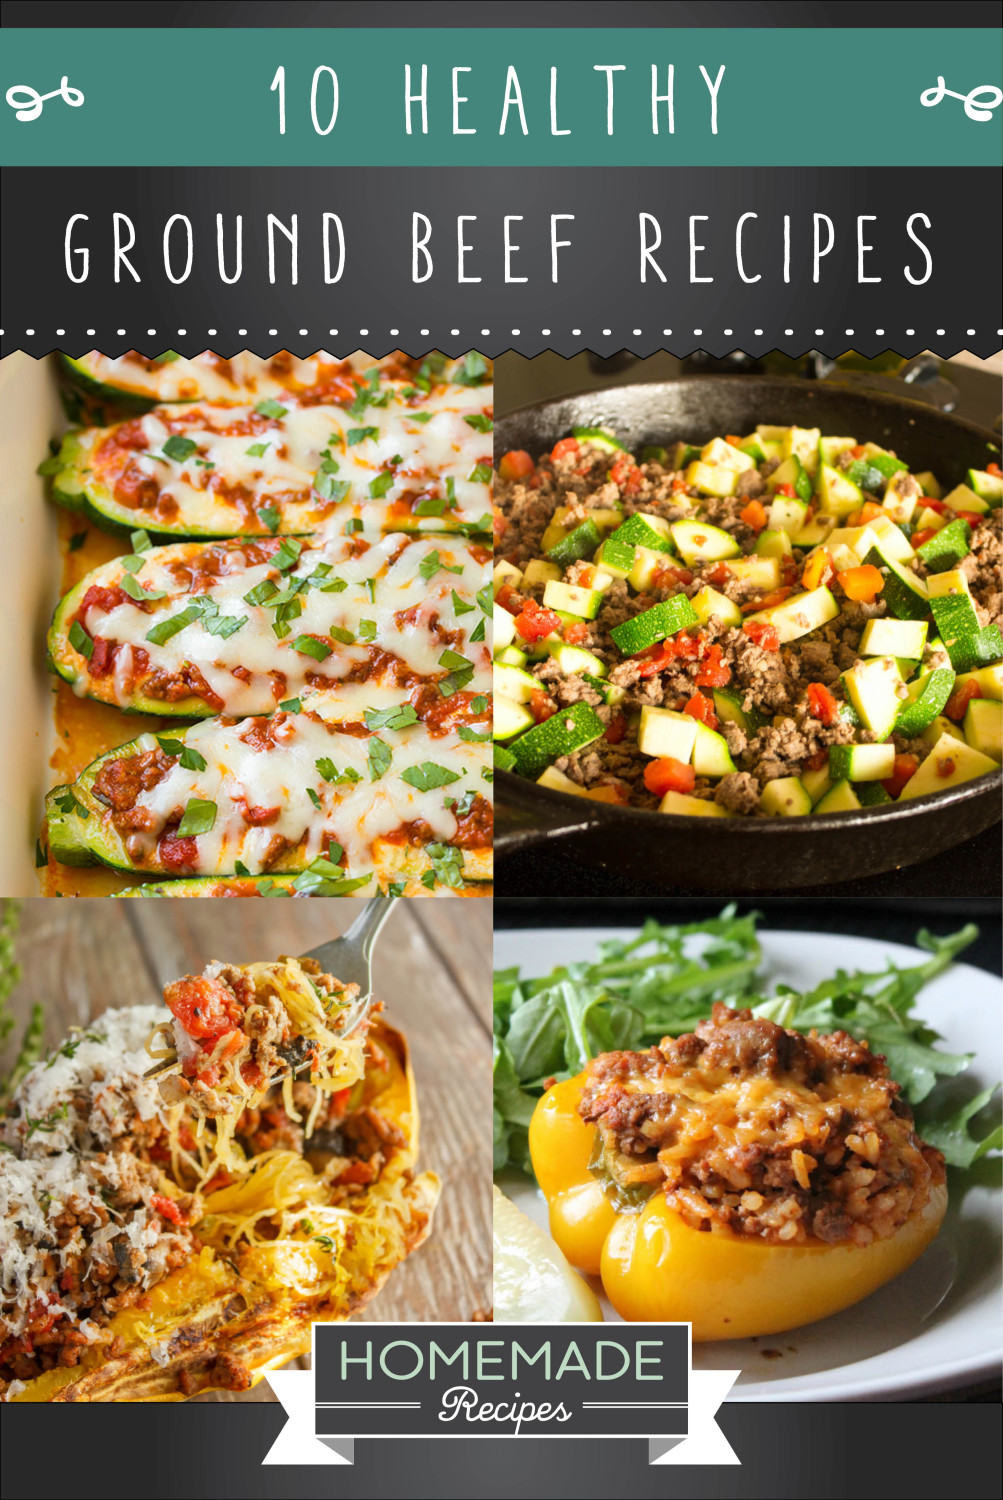 Healthy Meal With Ground Beef  10 Healthy Ground Beef Recipes